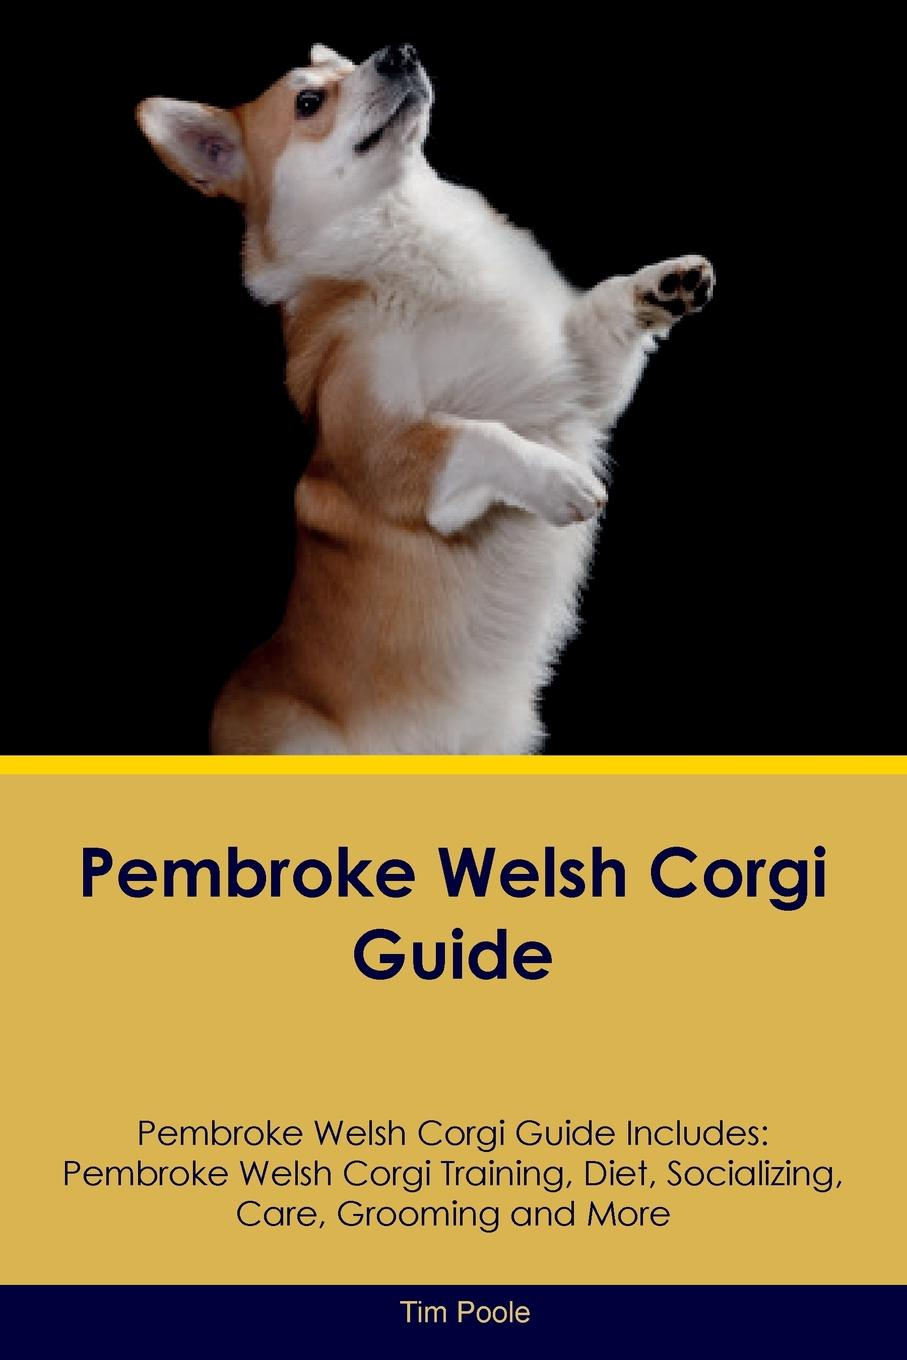 Tim Poole Pembroke Welsh Corgi Guide Pembroke Welsh Corgi Guide Includes. Pembroke Welsh Corgi Training, Diet, Socializing, Care, Grooming, Breeding and More t jones a guide to welsh part i